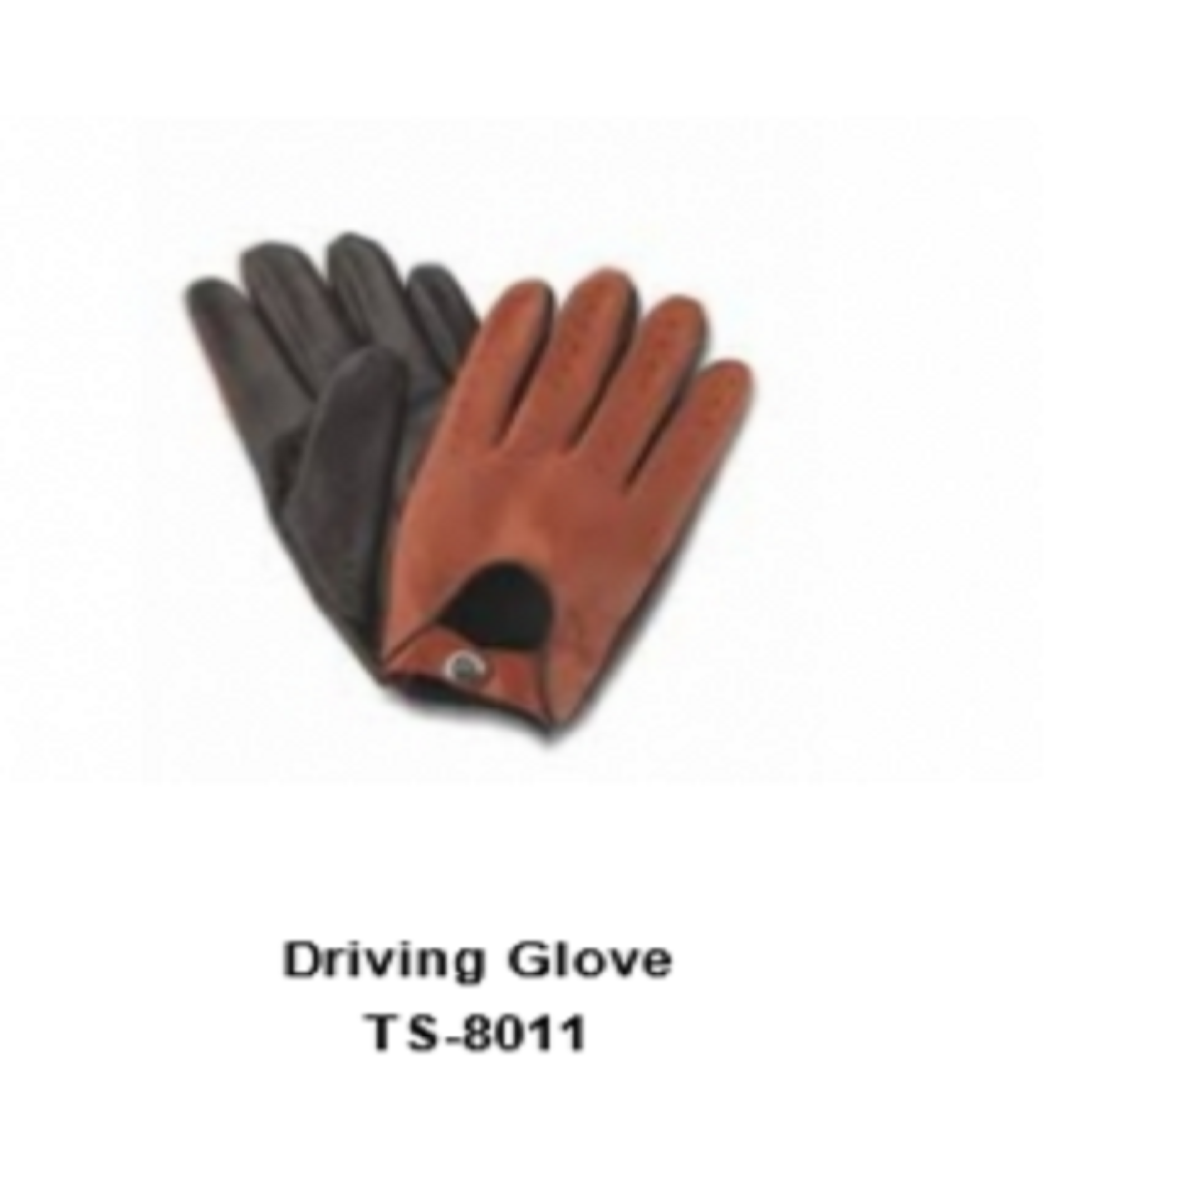 Leather Men's Fashion Driving Gloves Model No. TSI 8011